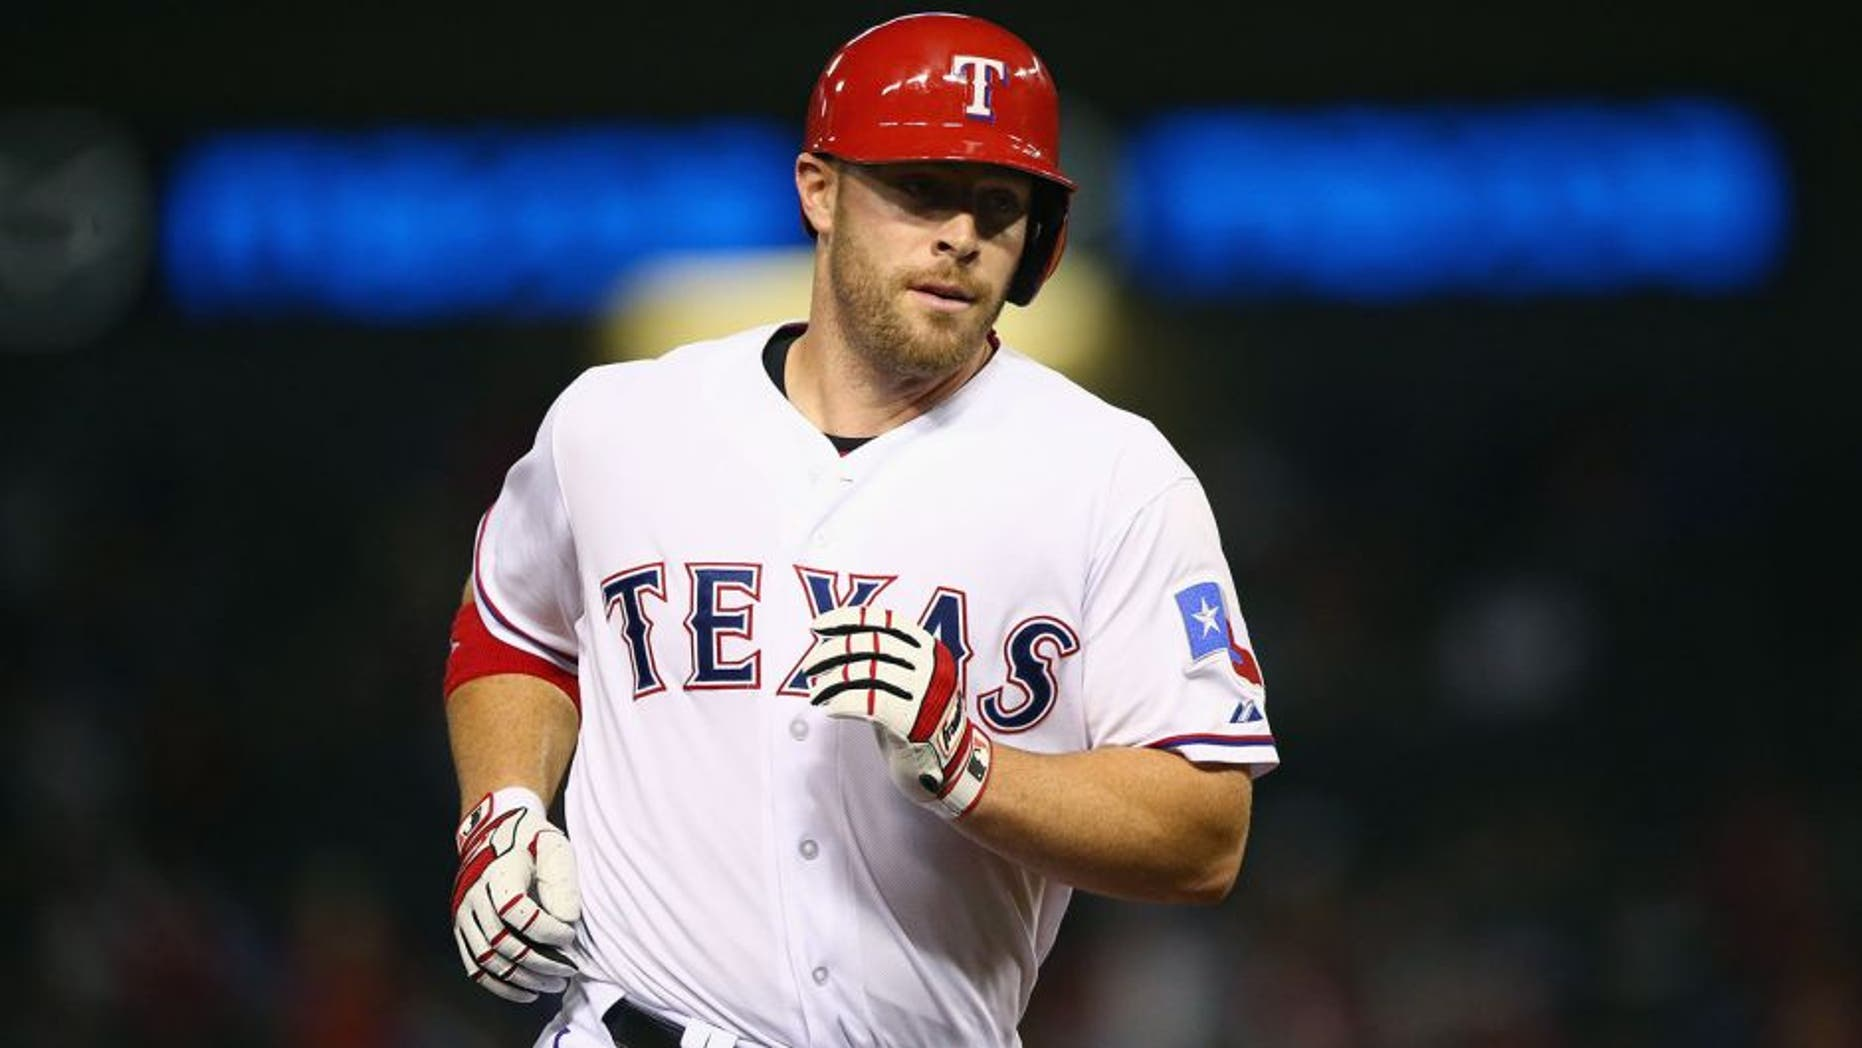 ARLINGTON, TX - AUGUST 28: Chris Gimenez #38 of the Texas Rangers hits a home run in the fifth inning against the Baltimore Orioles at Globe Life Park in Arlington on August 28, 2015 in Arlington, Texas. (Photo by Ronald Martinez/Getty Images)